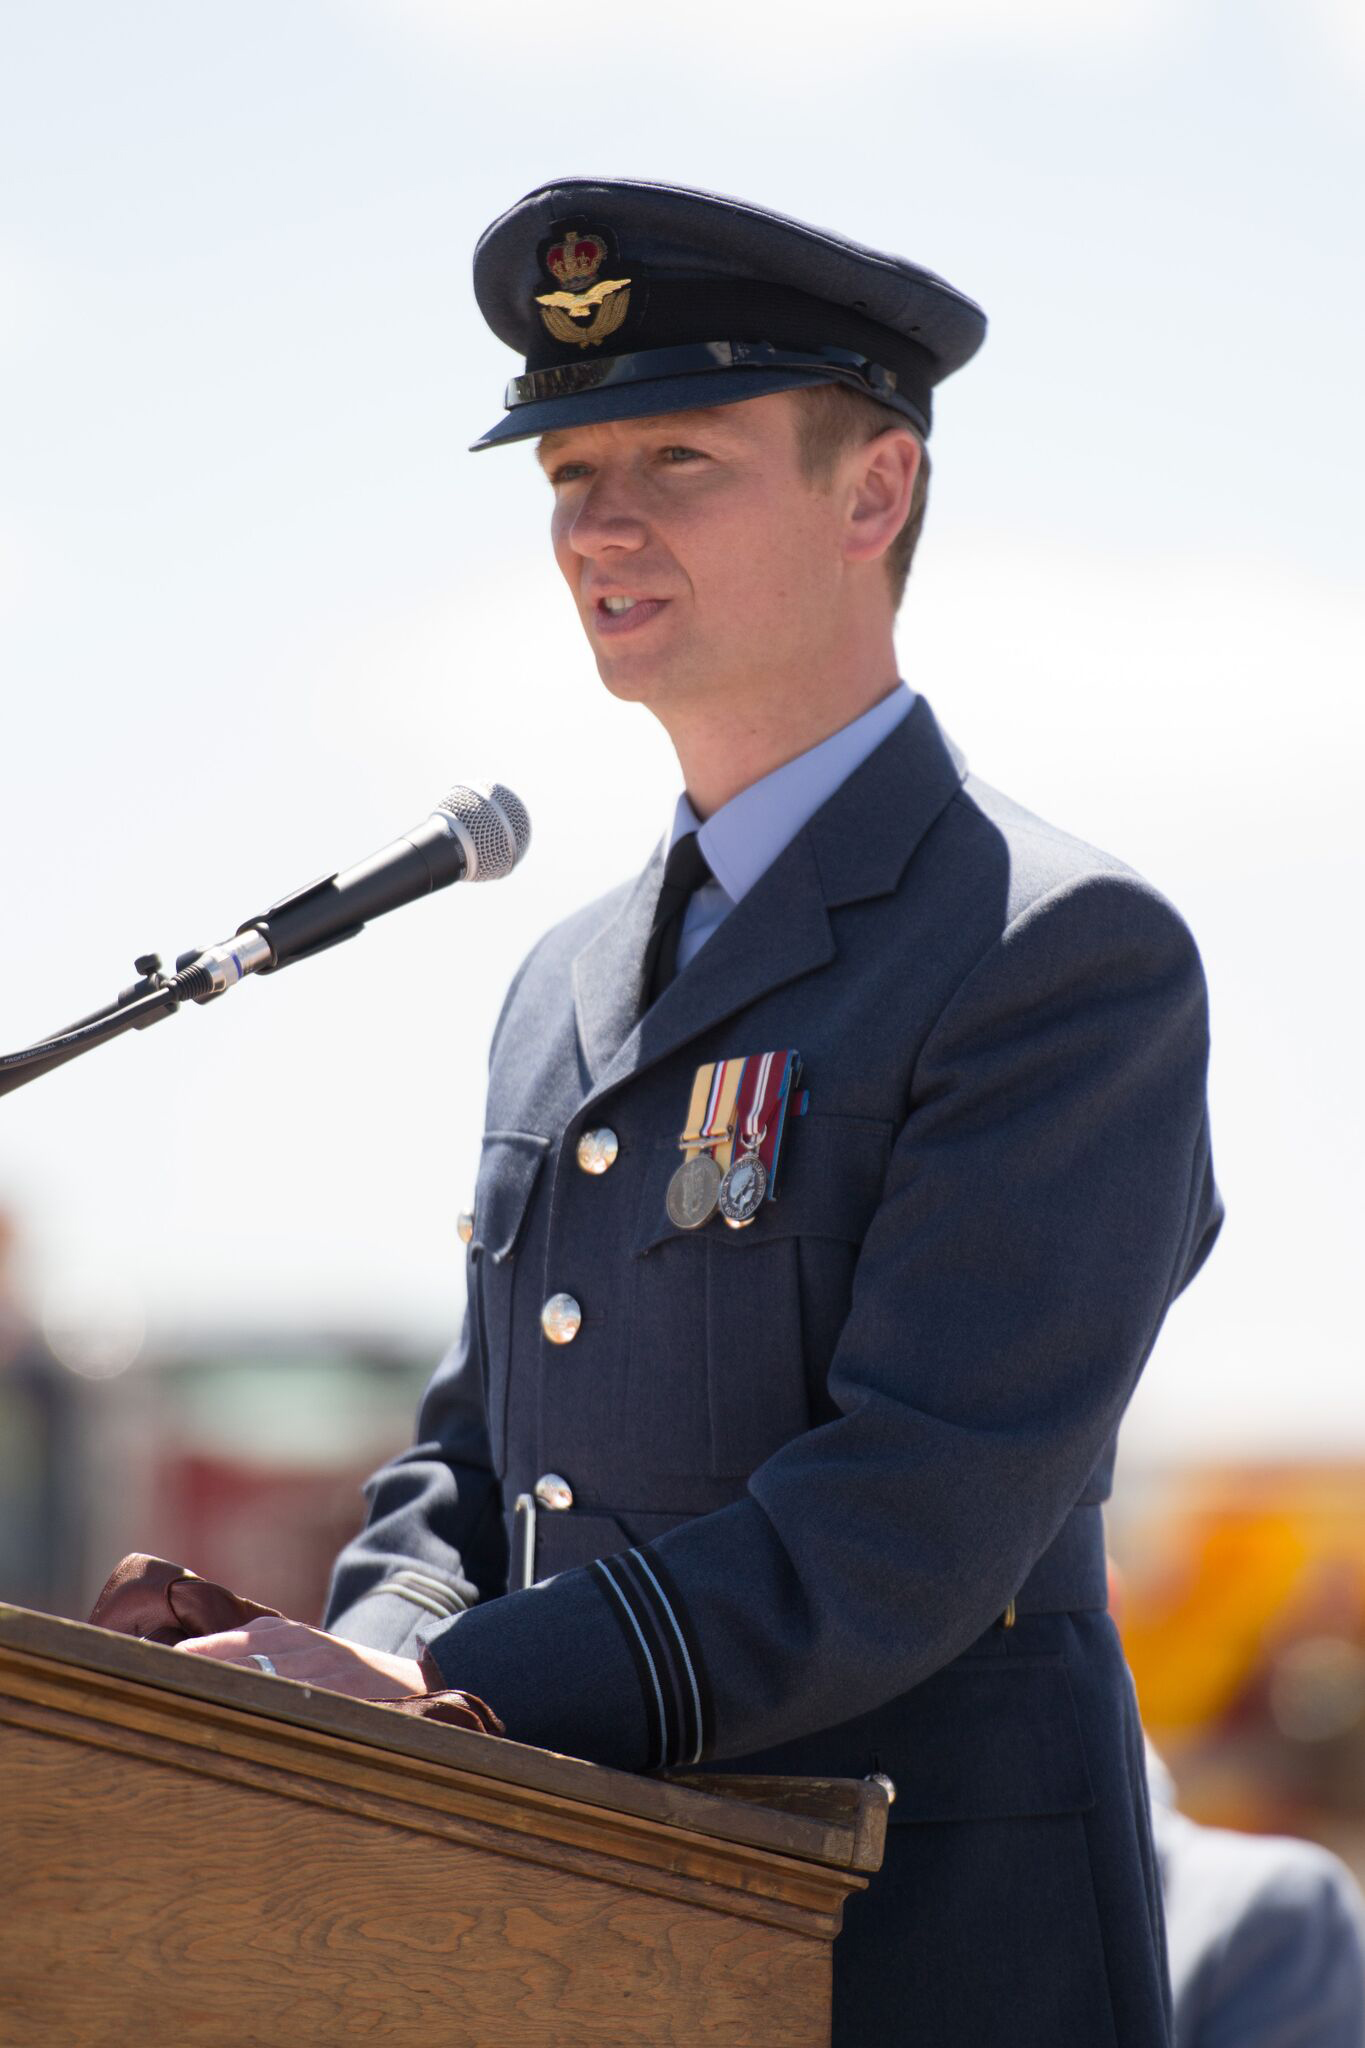 Le capitaine d'aviation James Andrews, de la Royal Air Force, prend la parole devant la foule réunie à l'occasion du 75e anniversaire de l'École élémentaire de pilotage no 31 De Winton, le 15 juin 2016. PHOTO gracieuseté d'Anne Gafiuk